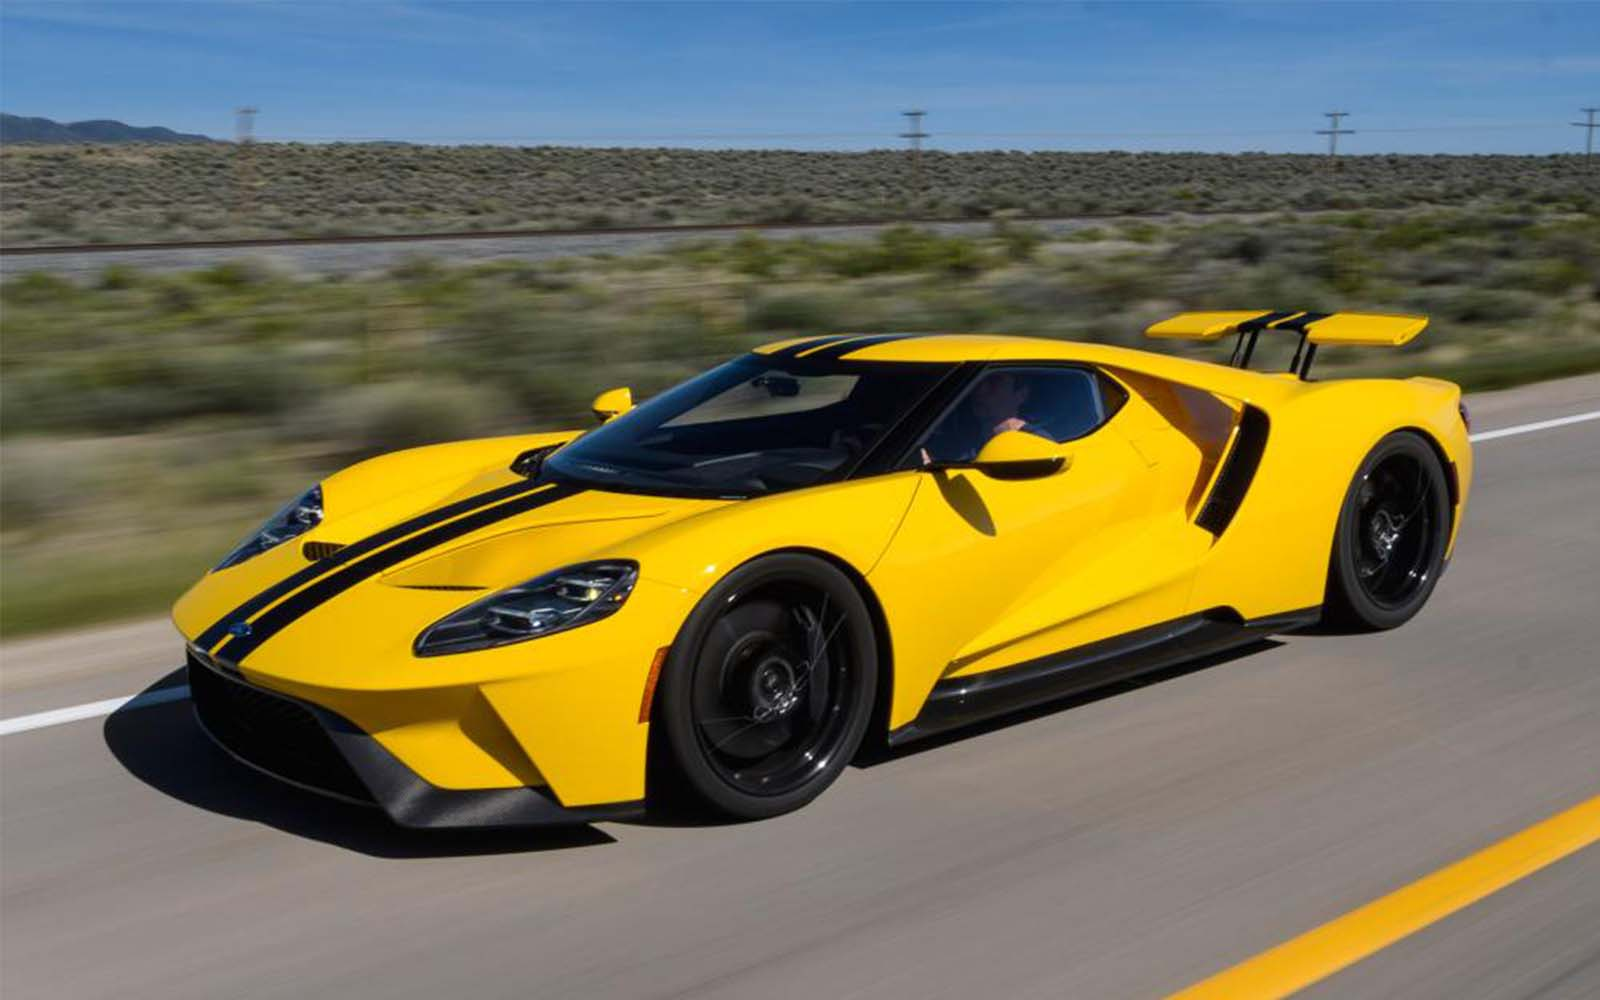 mclaren 720s yellow with Conheca Os 10 Carros Mais Rapidos Do Mundo on Porsche 911 Gt3 2017 6673 likewise 570 further AWsVXC4PvMLmf7A4zTLbVyQ in addition Black Mclaren Mp4 Wallpaper Desktop in addition 2018 Lexus Lc 500 Add On Tuning Hq.